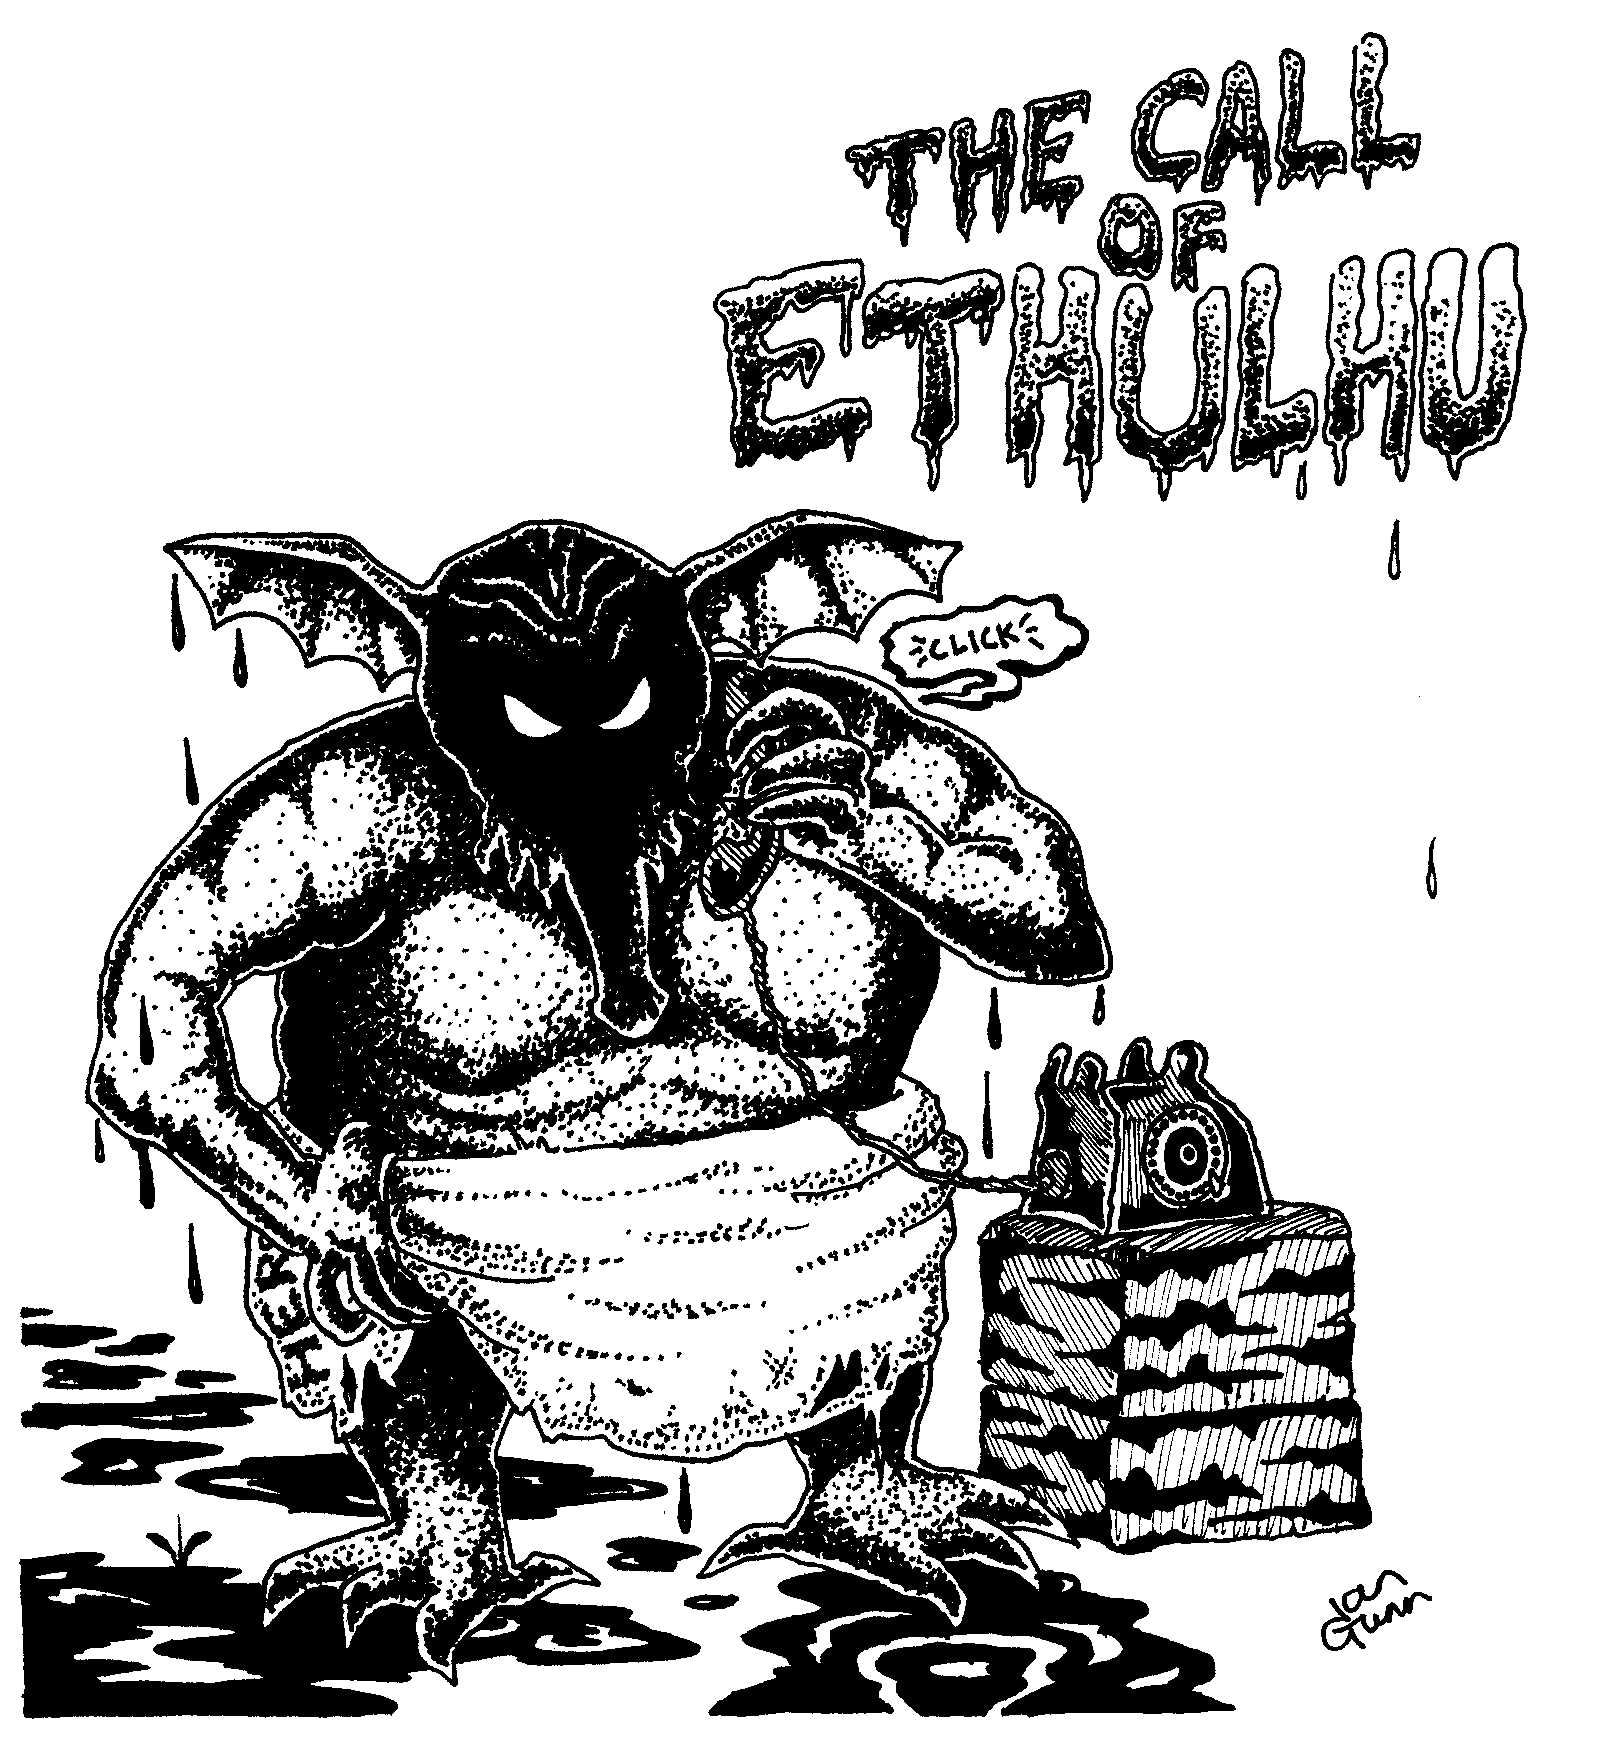 Call of Ethulhu